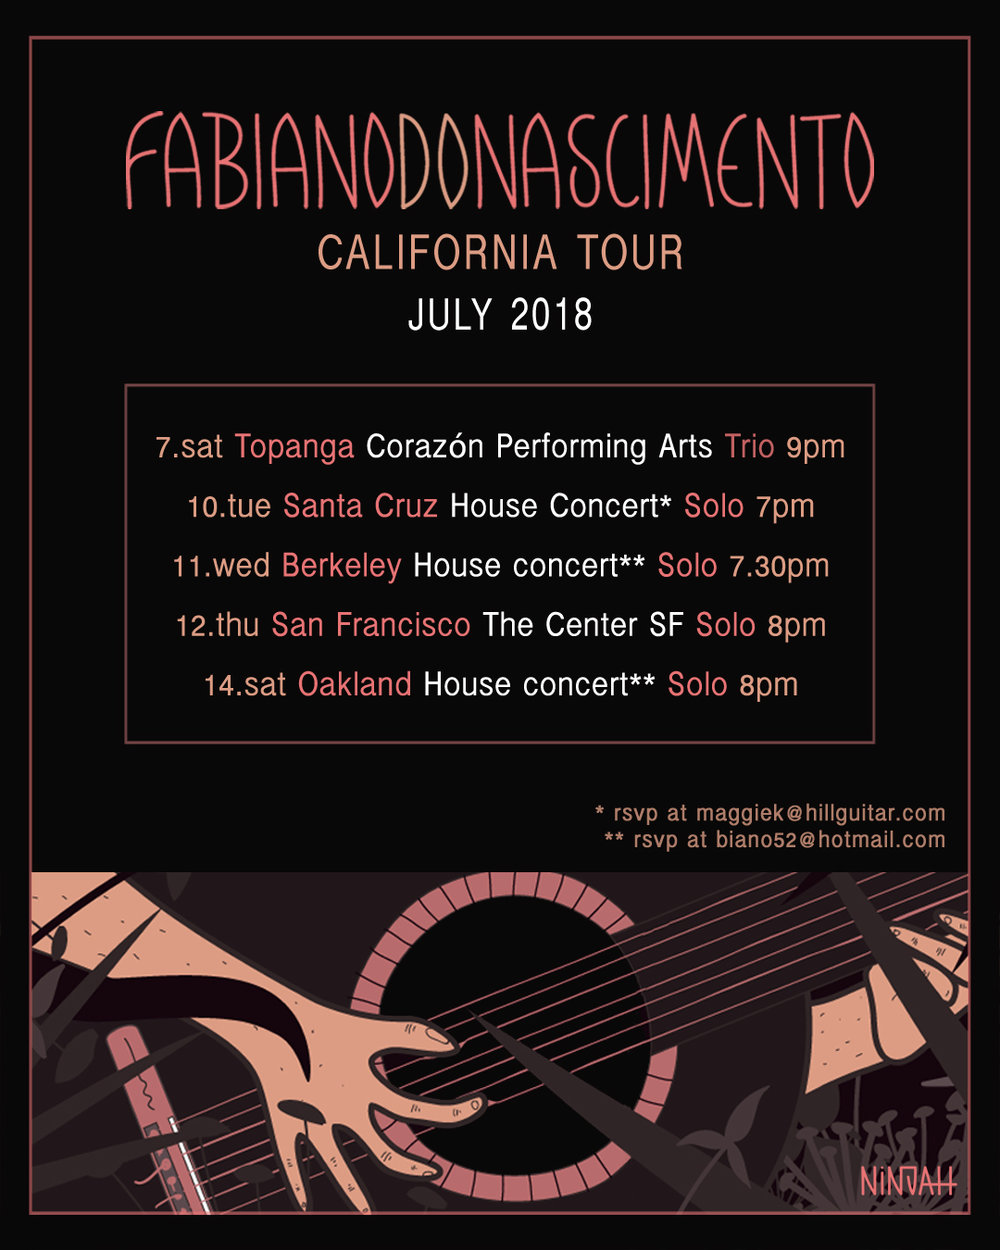 Fabi Tour California jul 2018.jpg